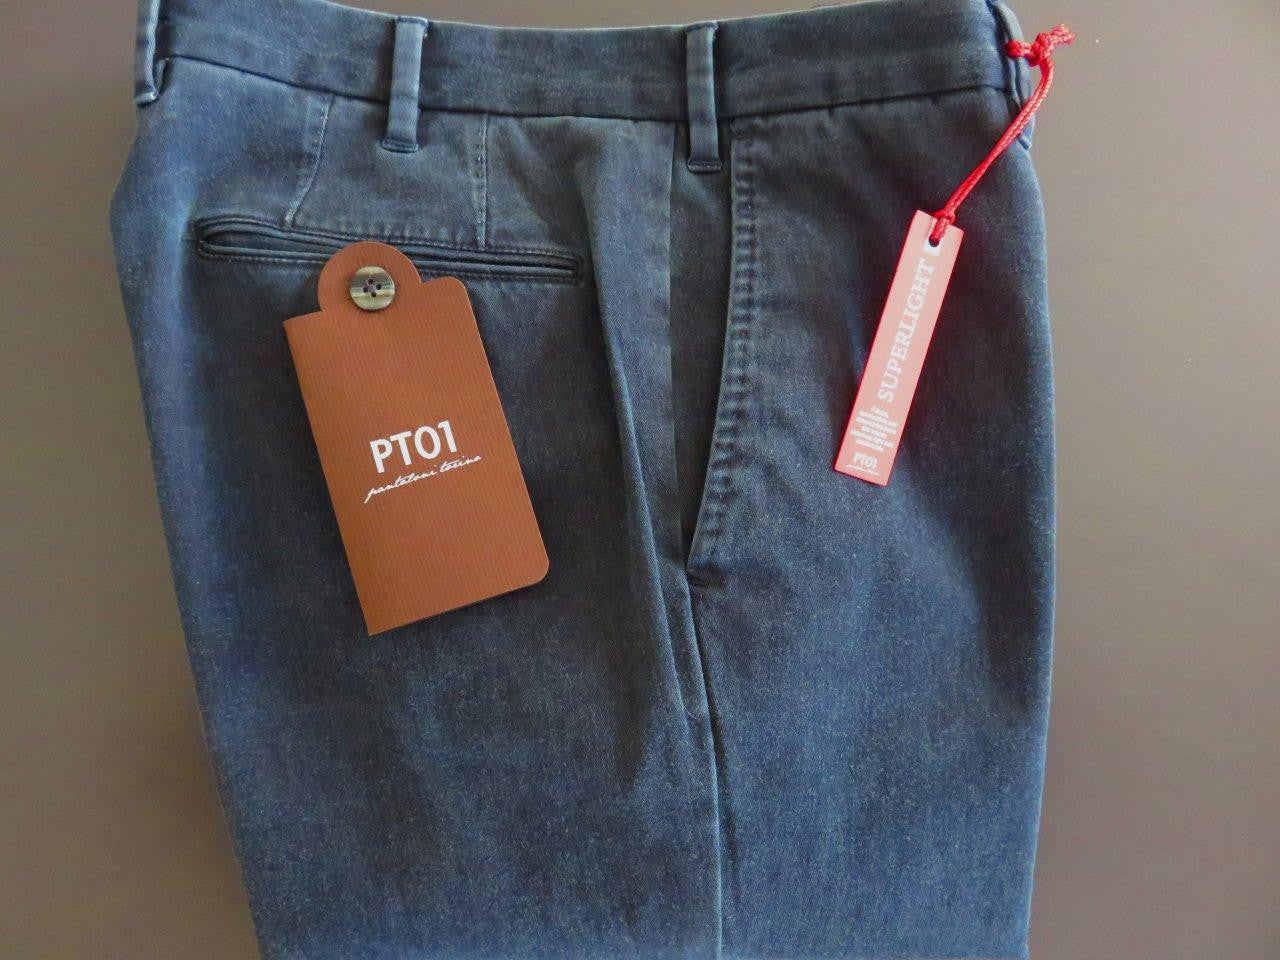 PT01 Pantaloni Torino - Model Super Light